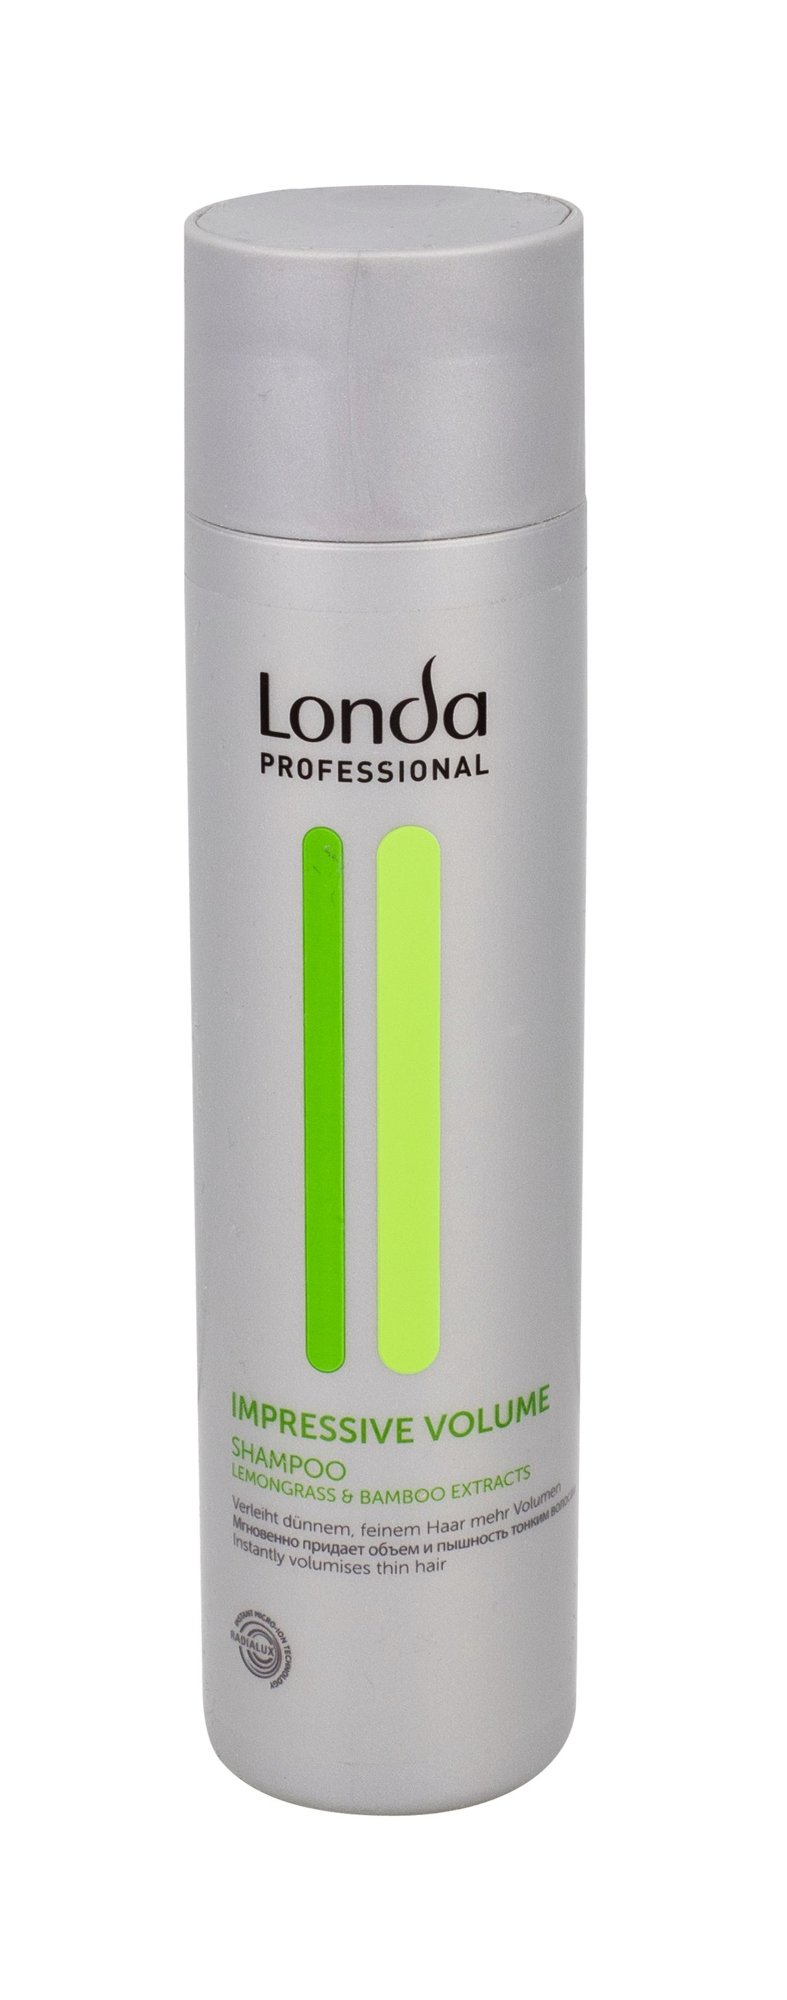 Londa Professional Impresive Volume Cosmetic 250ml